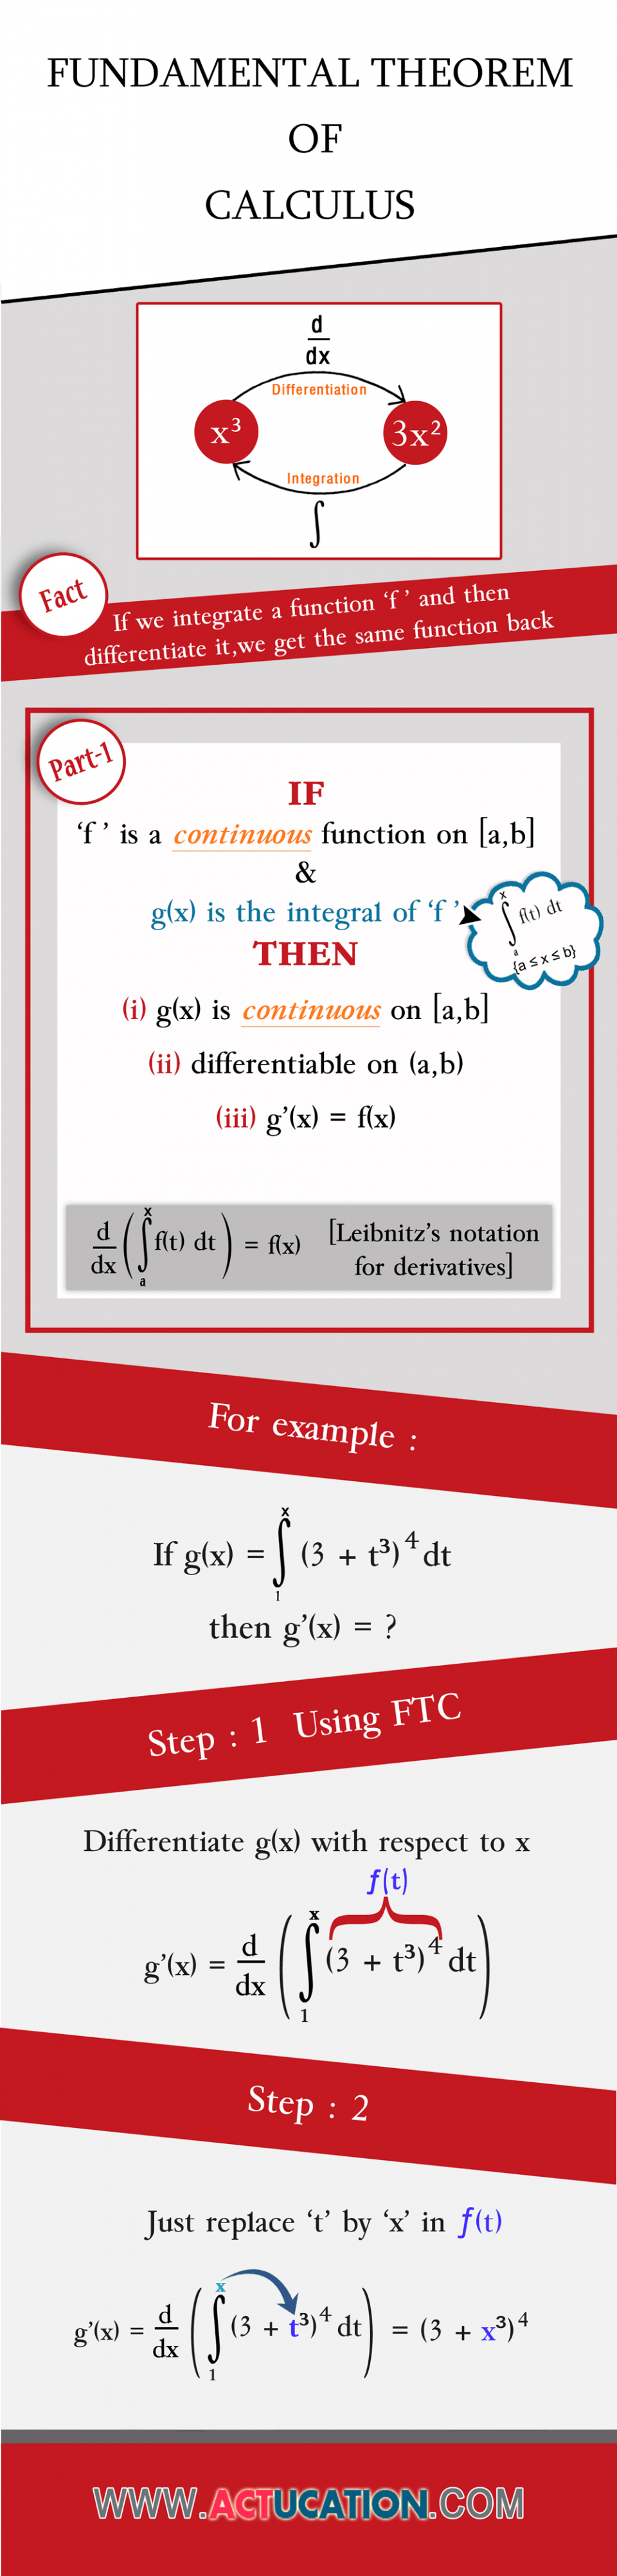 Fundamental Theorem of Calculus Infographic